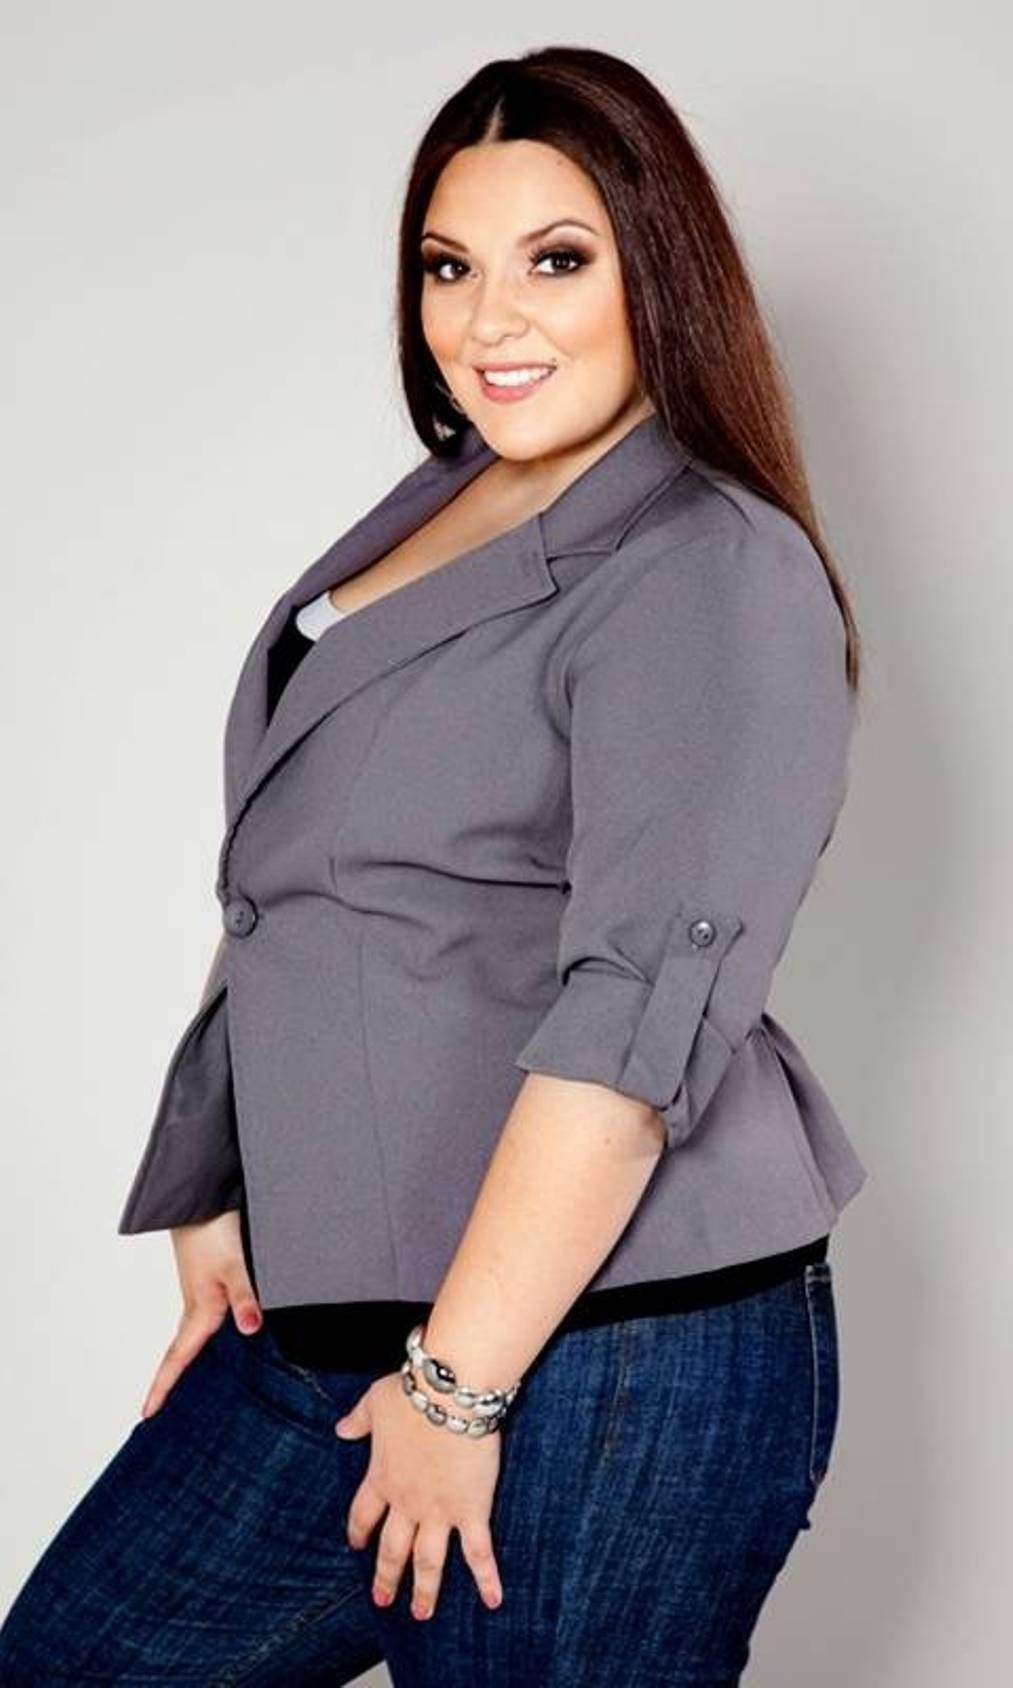 Whether you're looking for plus size fashion with ultra-sophistication or indisputable sexiness, Monif C. Plus Sizes apparel is the best place to find the hottest trends in plus size dresses, plus size jumpsuits and plus size swimwear.